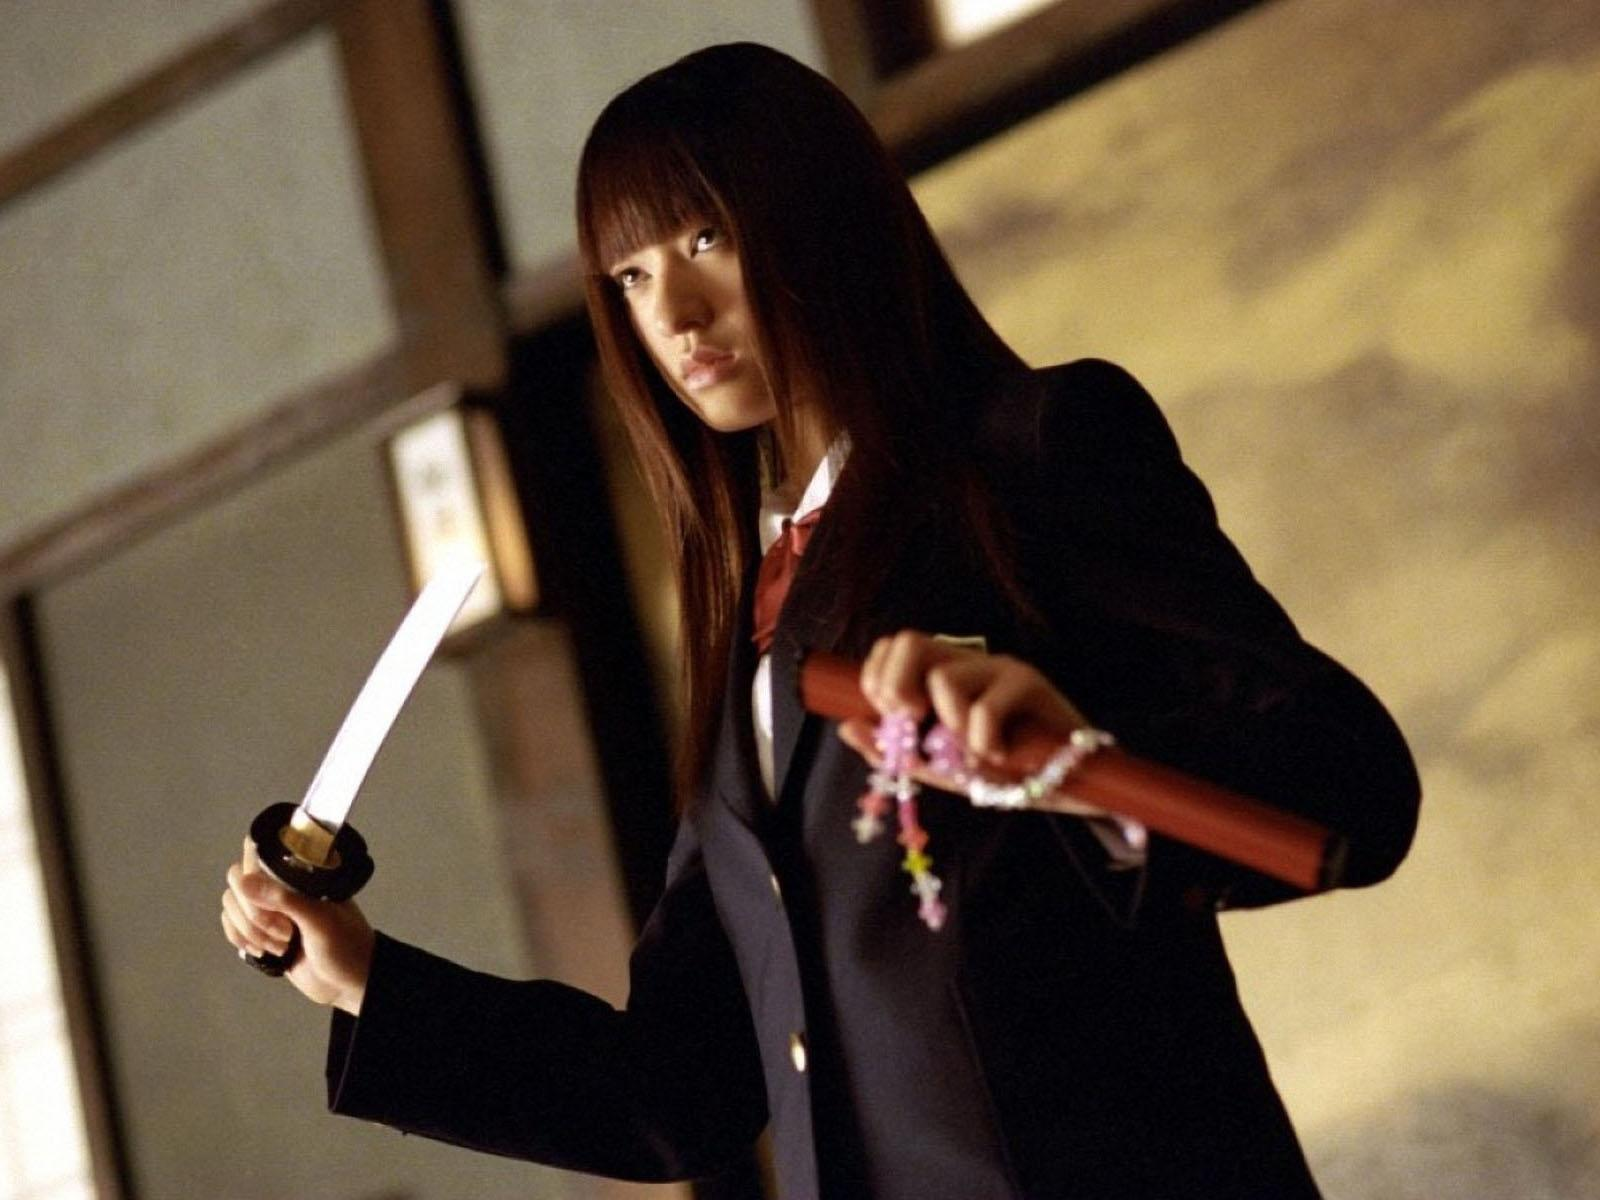 download movie killbill wallpaper - photo #33